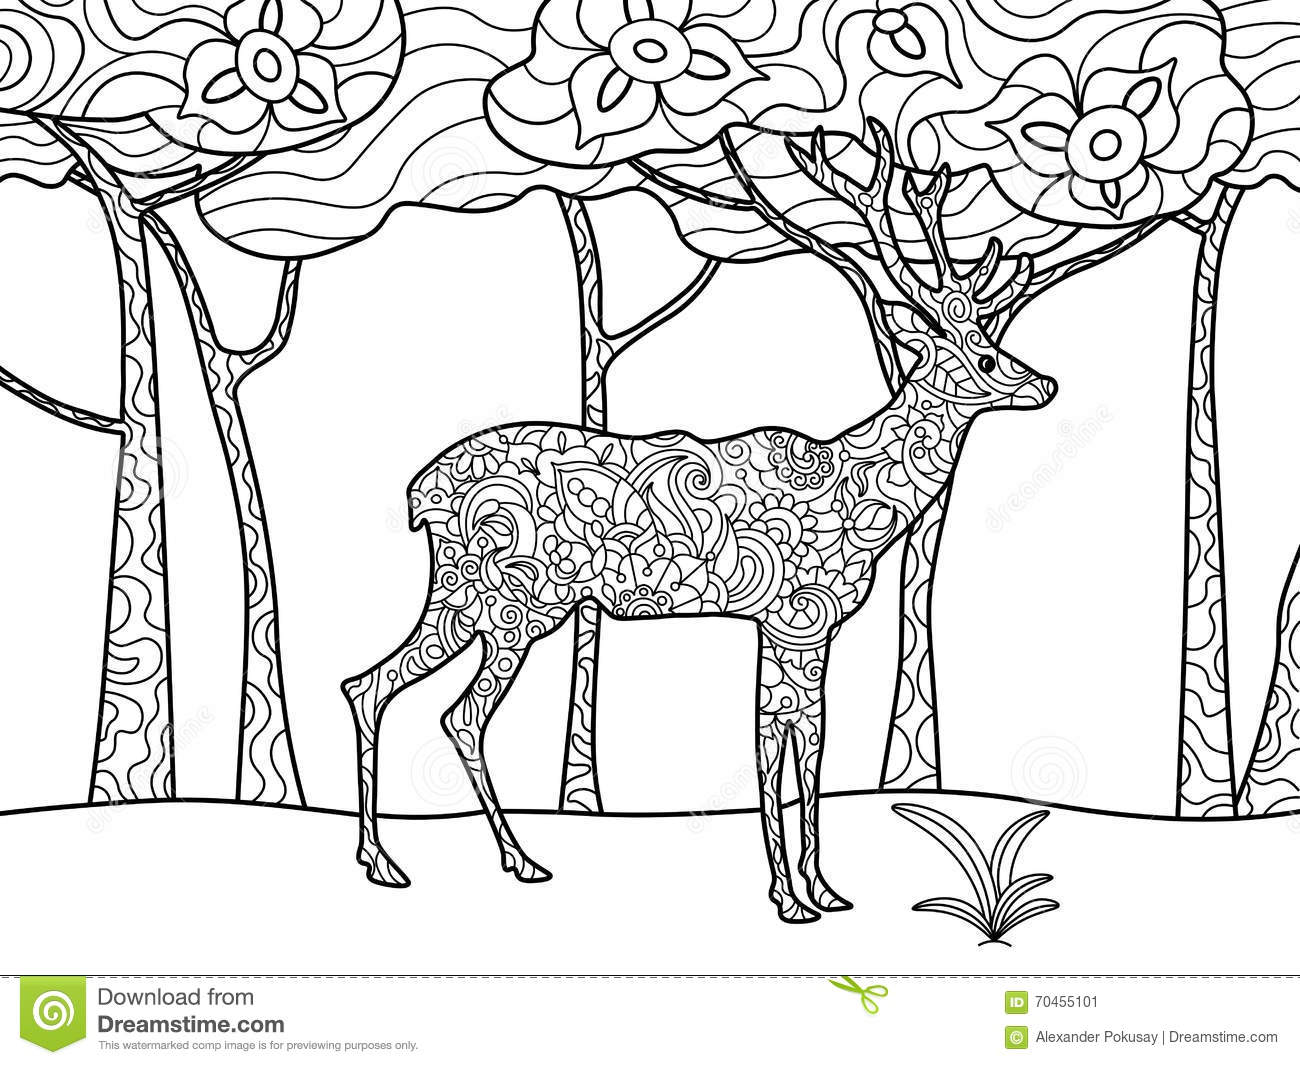 deer adult coloring pages - deer coloring book for adults raster stock vector